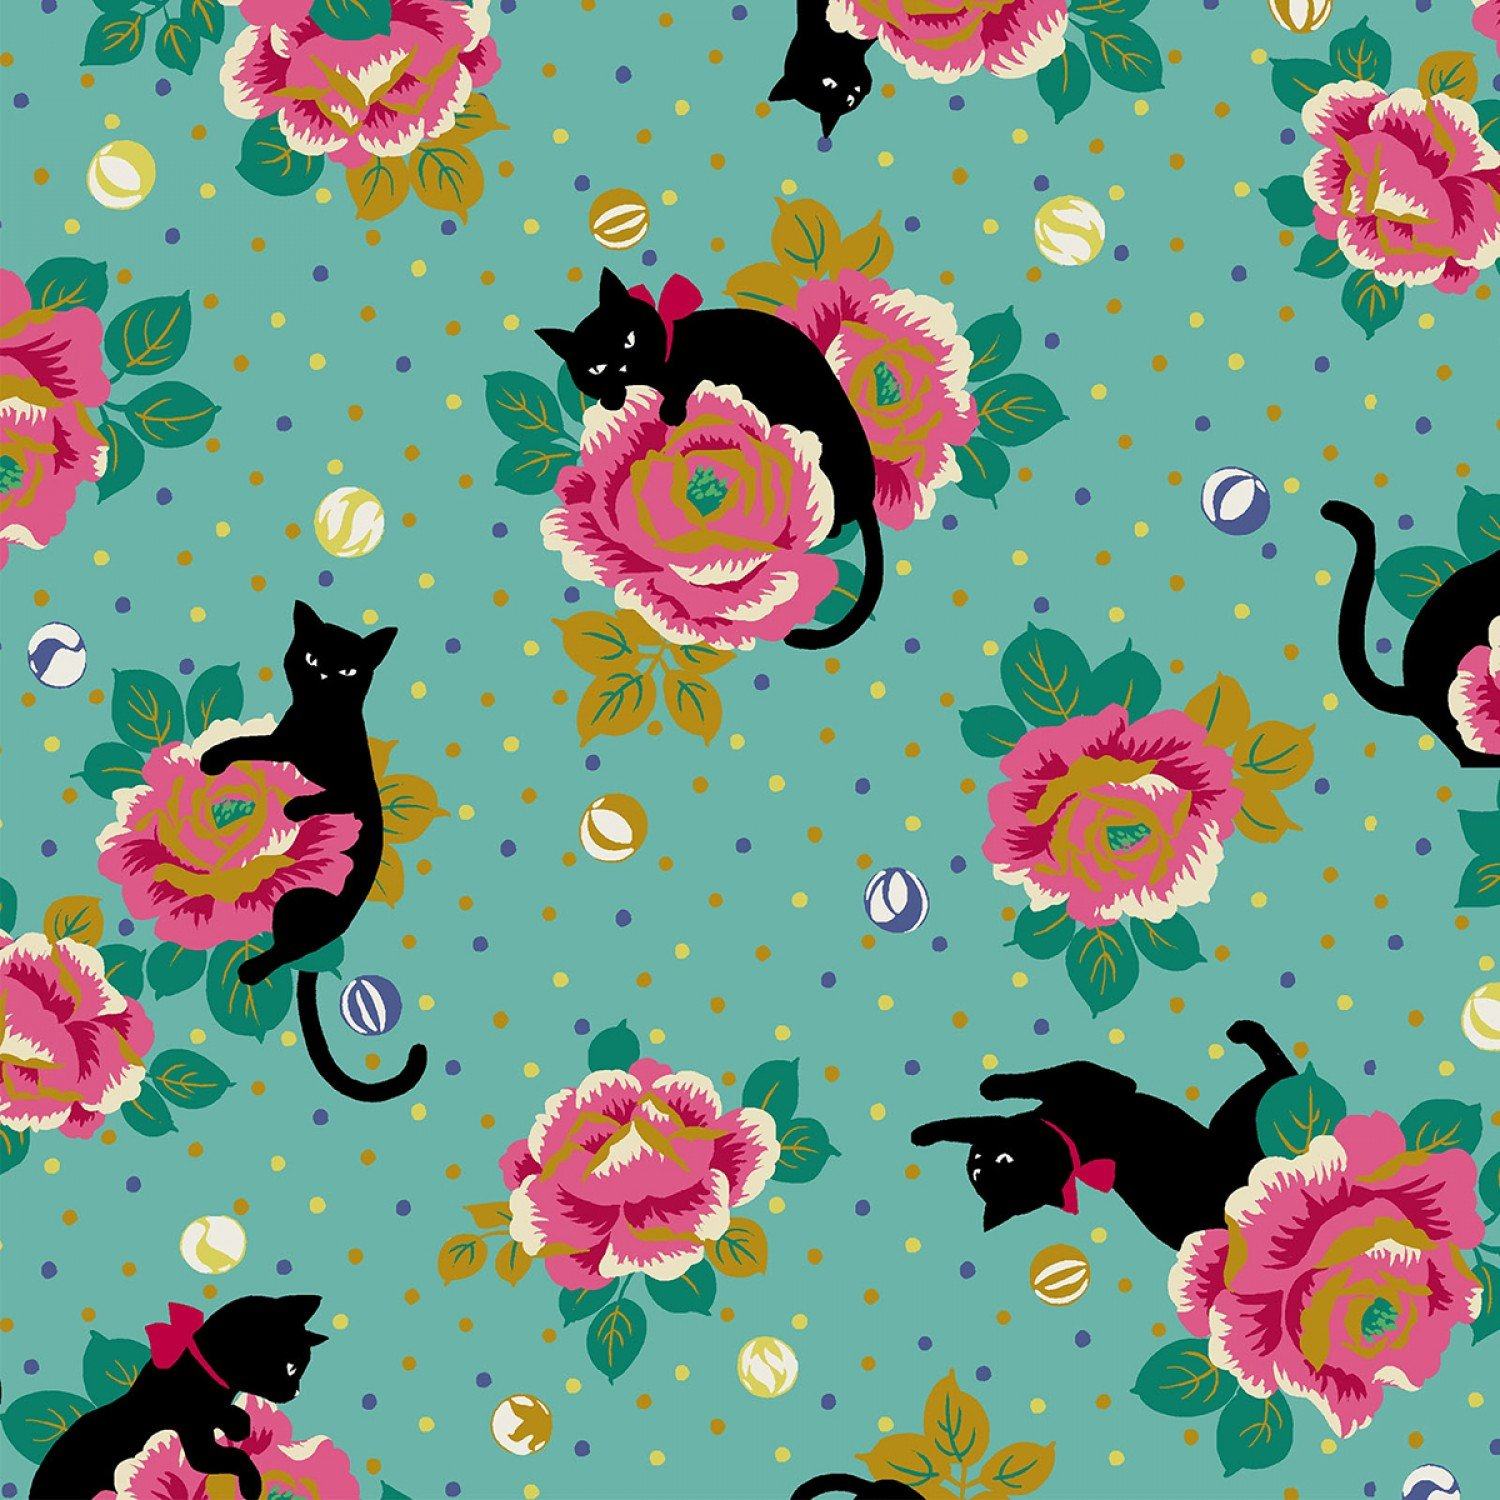 Pink flowers on teal with black cat hr3270 13b mightylinksfo